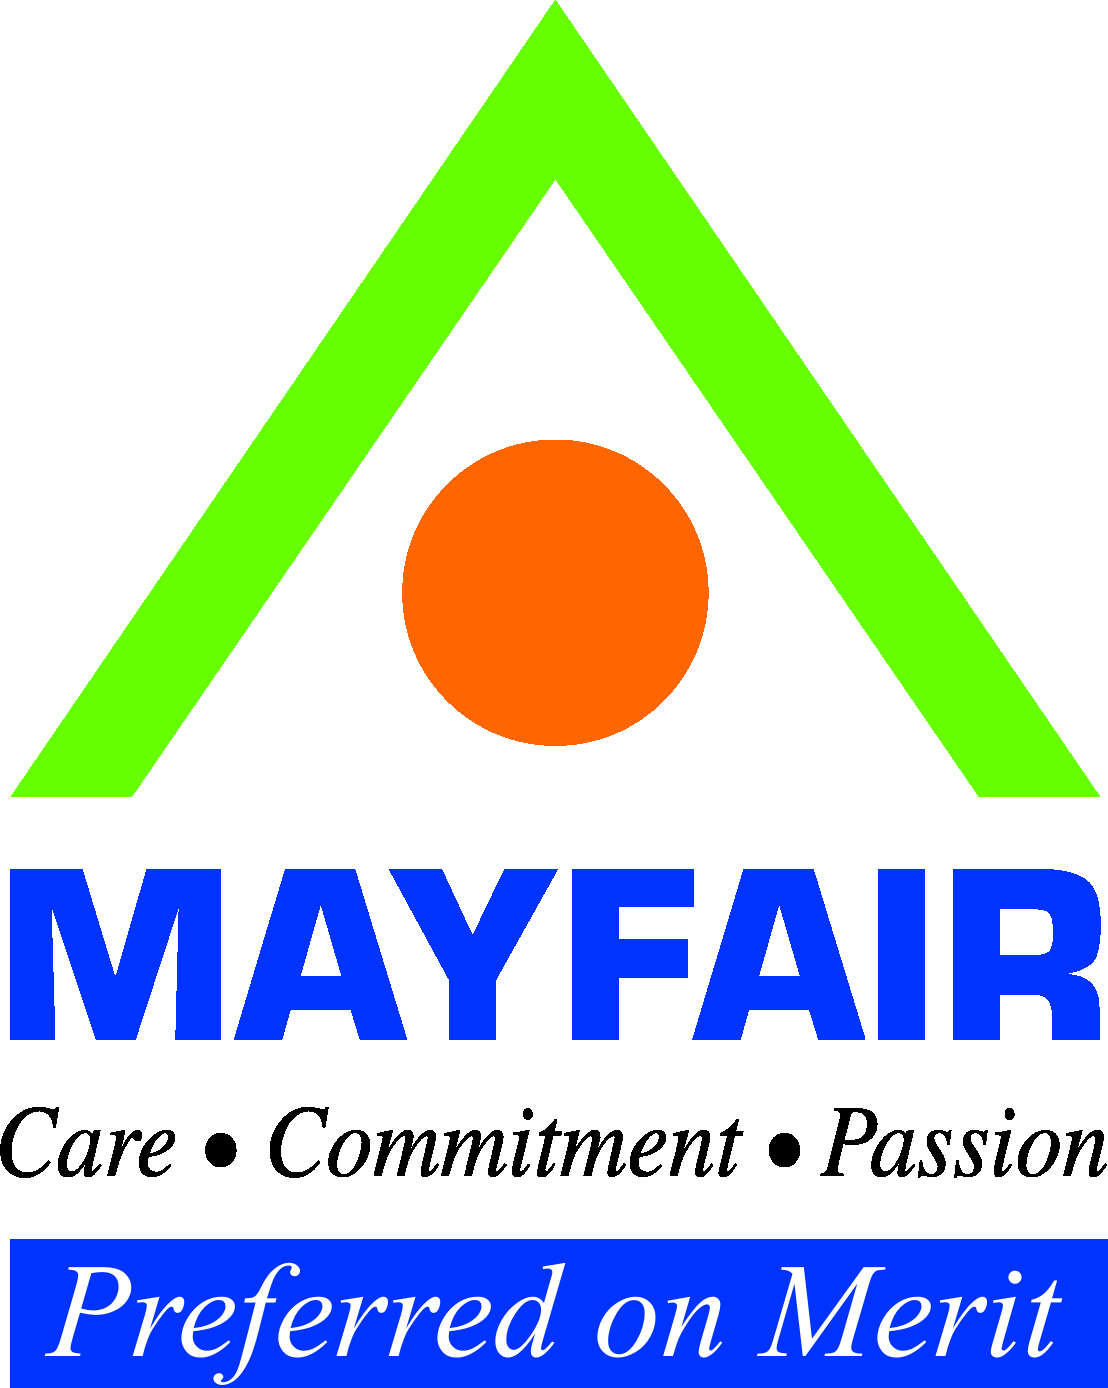 Mayfair Housing | Real Estate Company in Mumbai, India